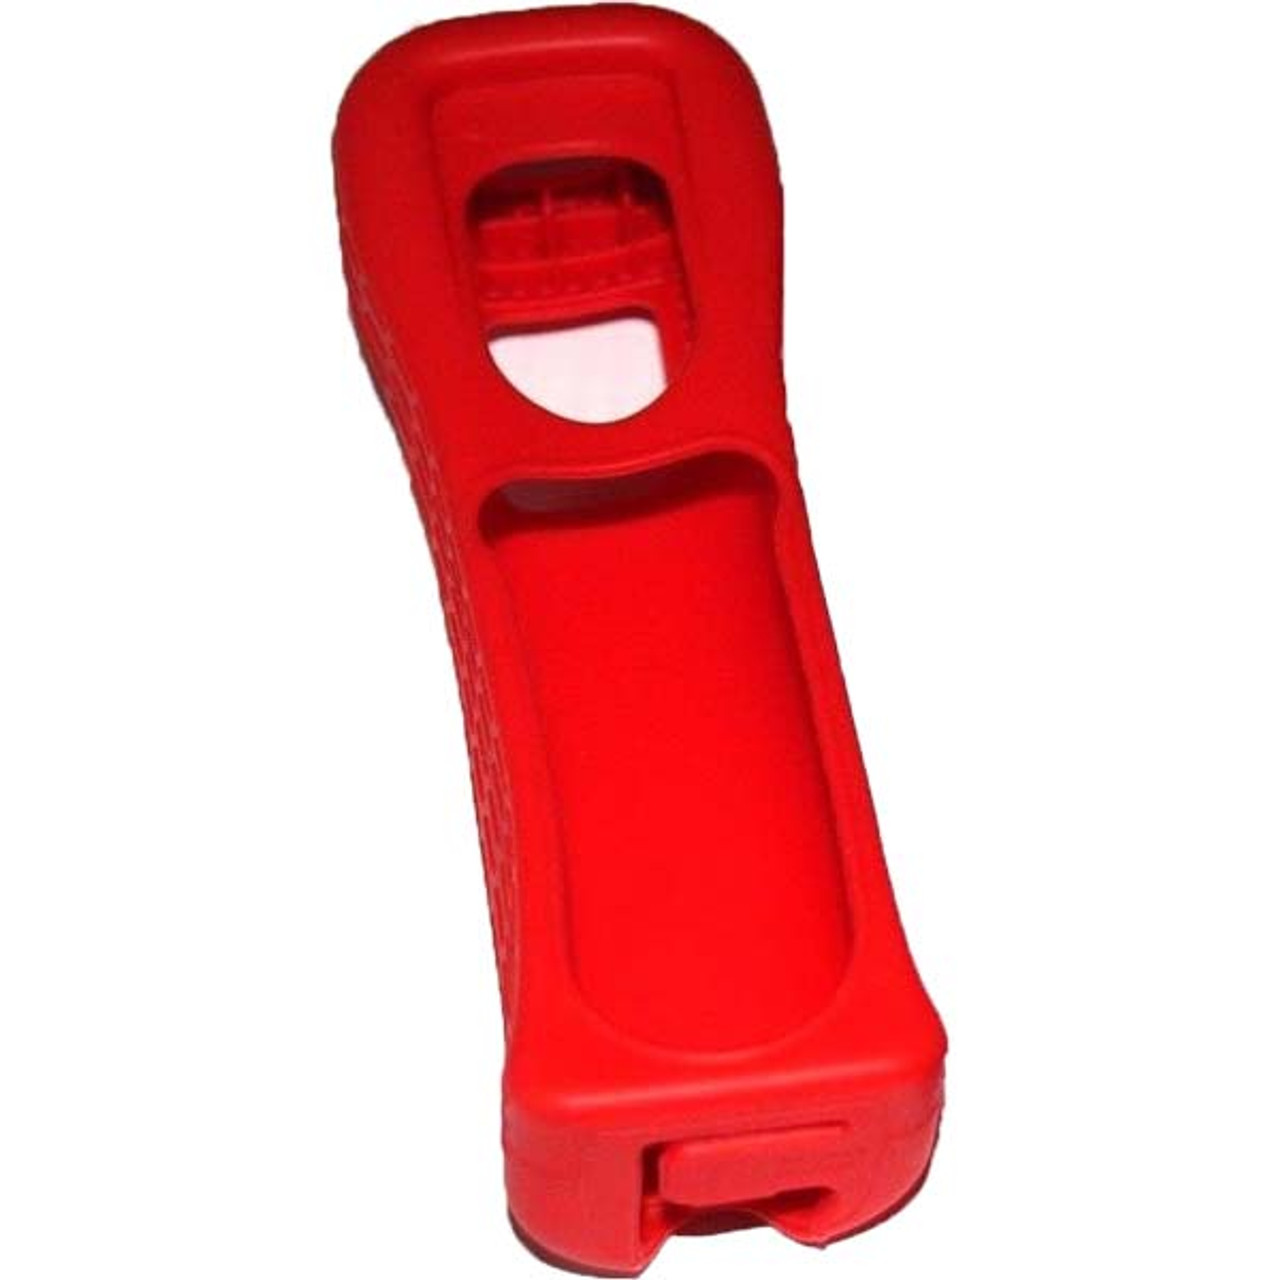 red wii remote controller silicone skin case wii for sale dkoldies